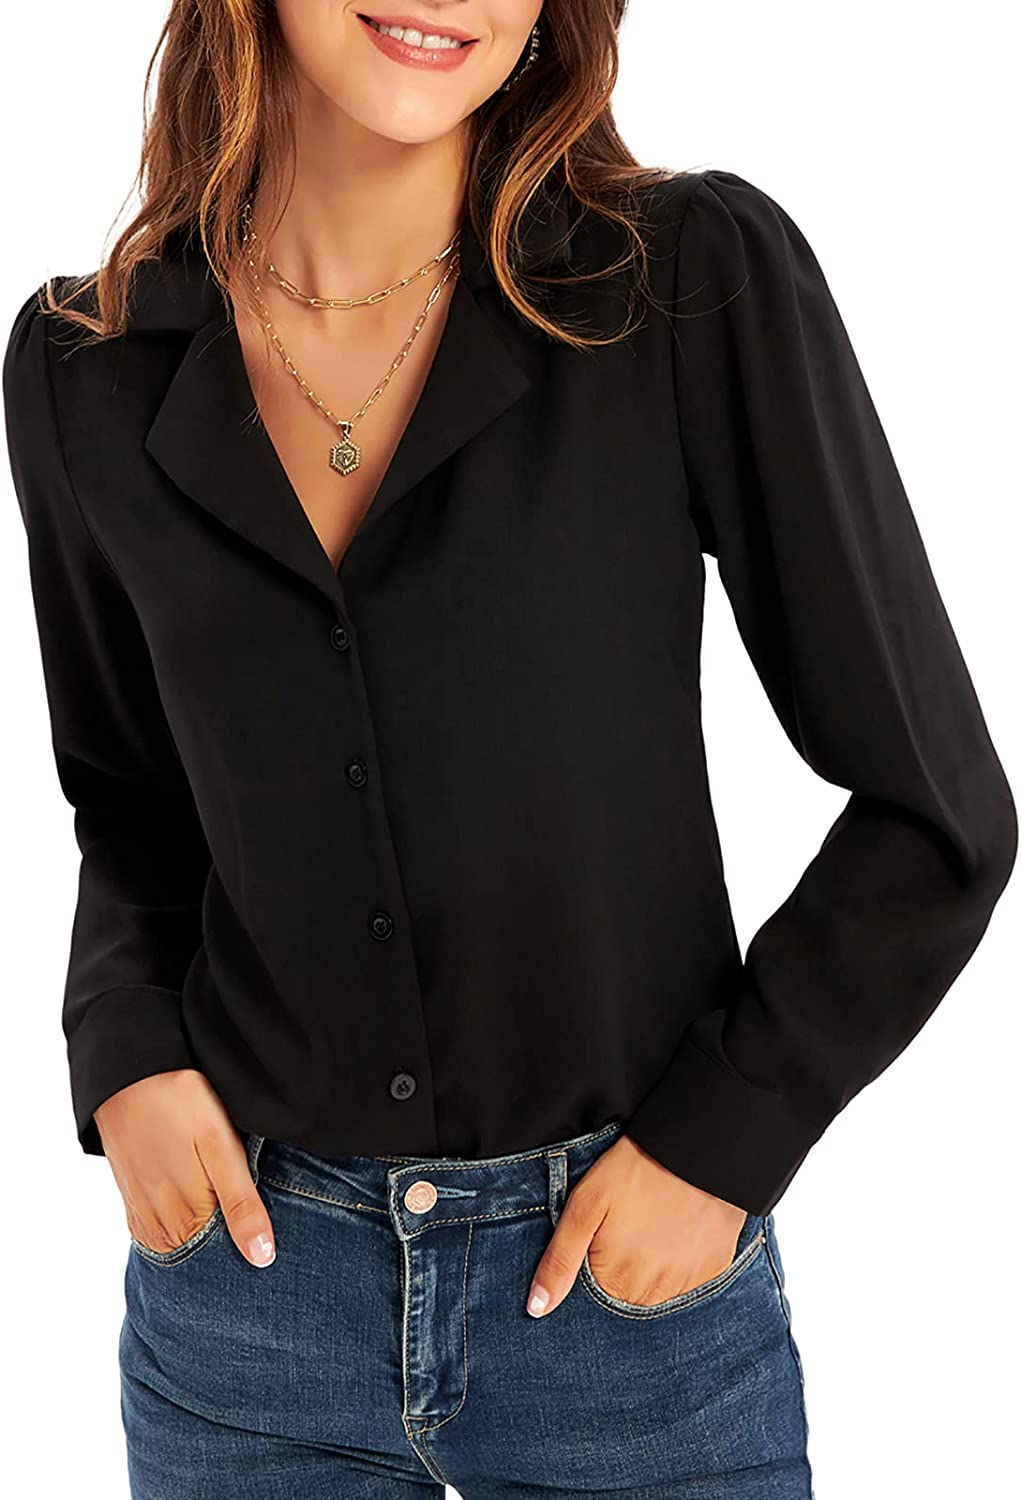 Max 77% OFF GRACE KARIN Women's Button Down Long Shirts Sale item Sleeve Busine Casual